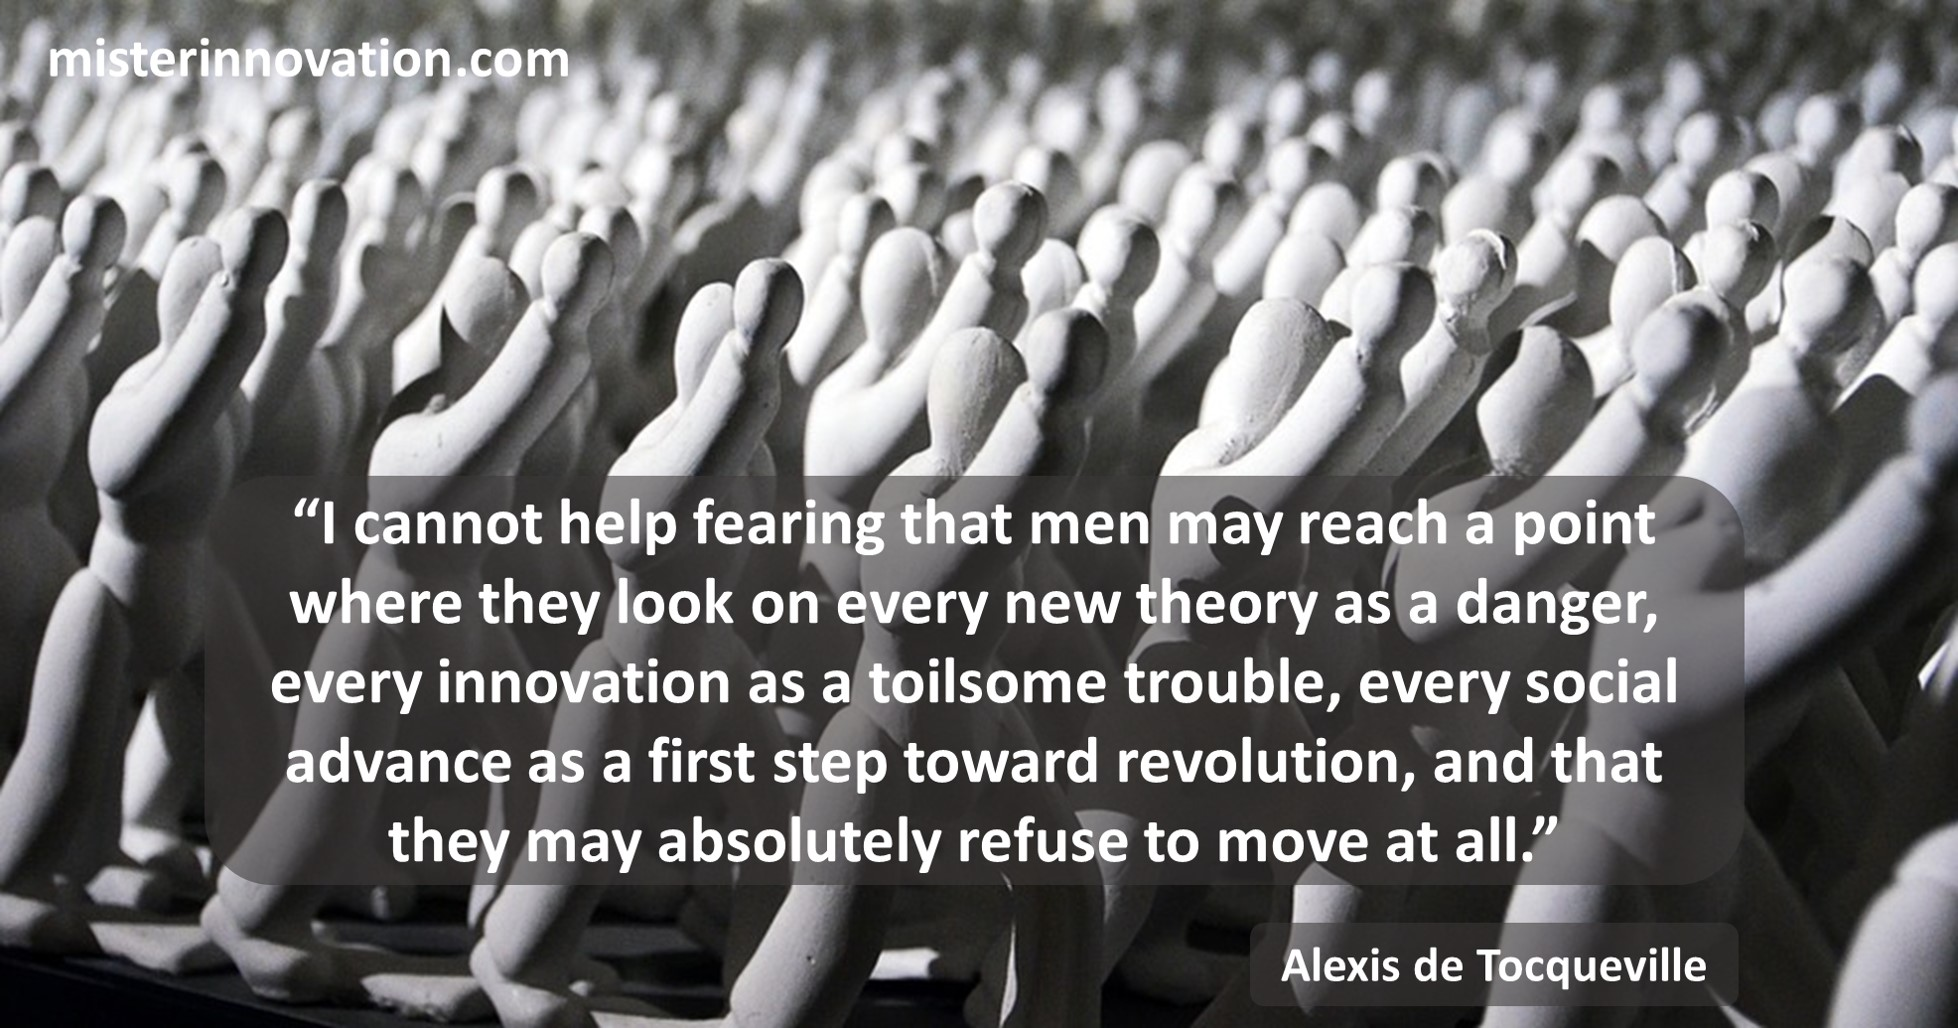 Alexis de Tocqueville Quote on Fear and Innovation